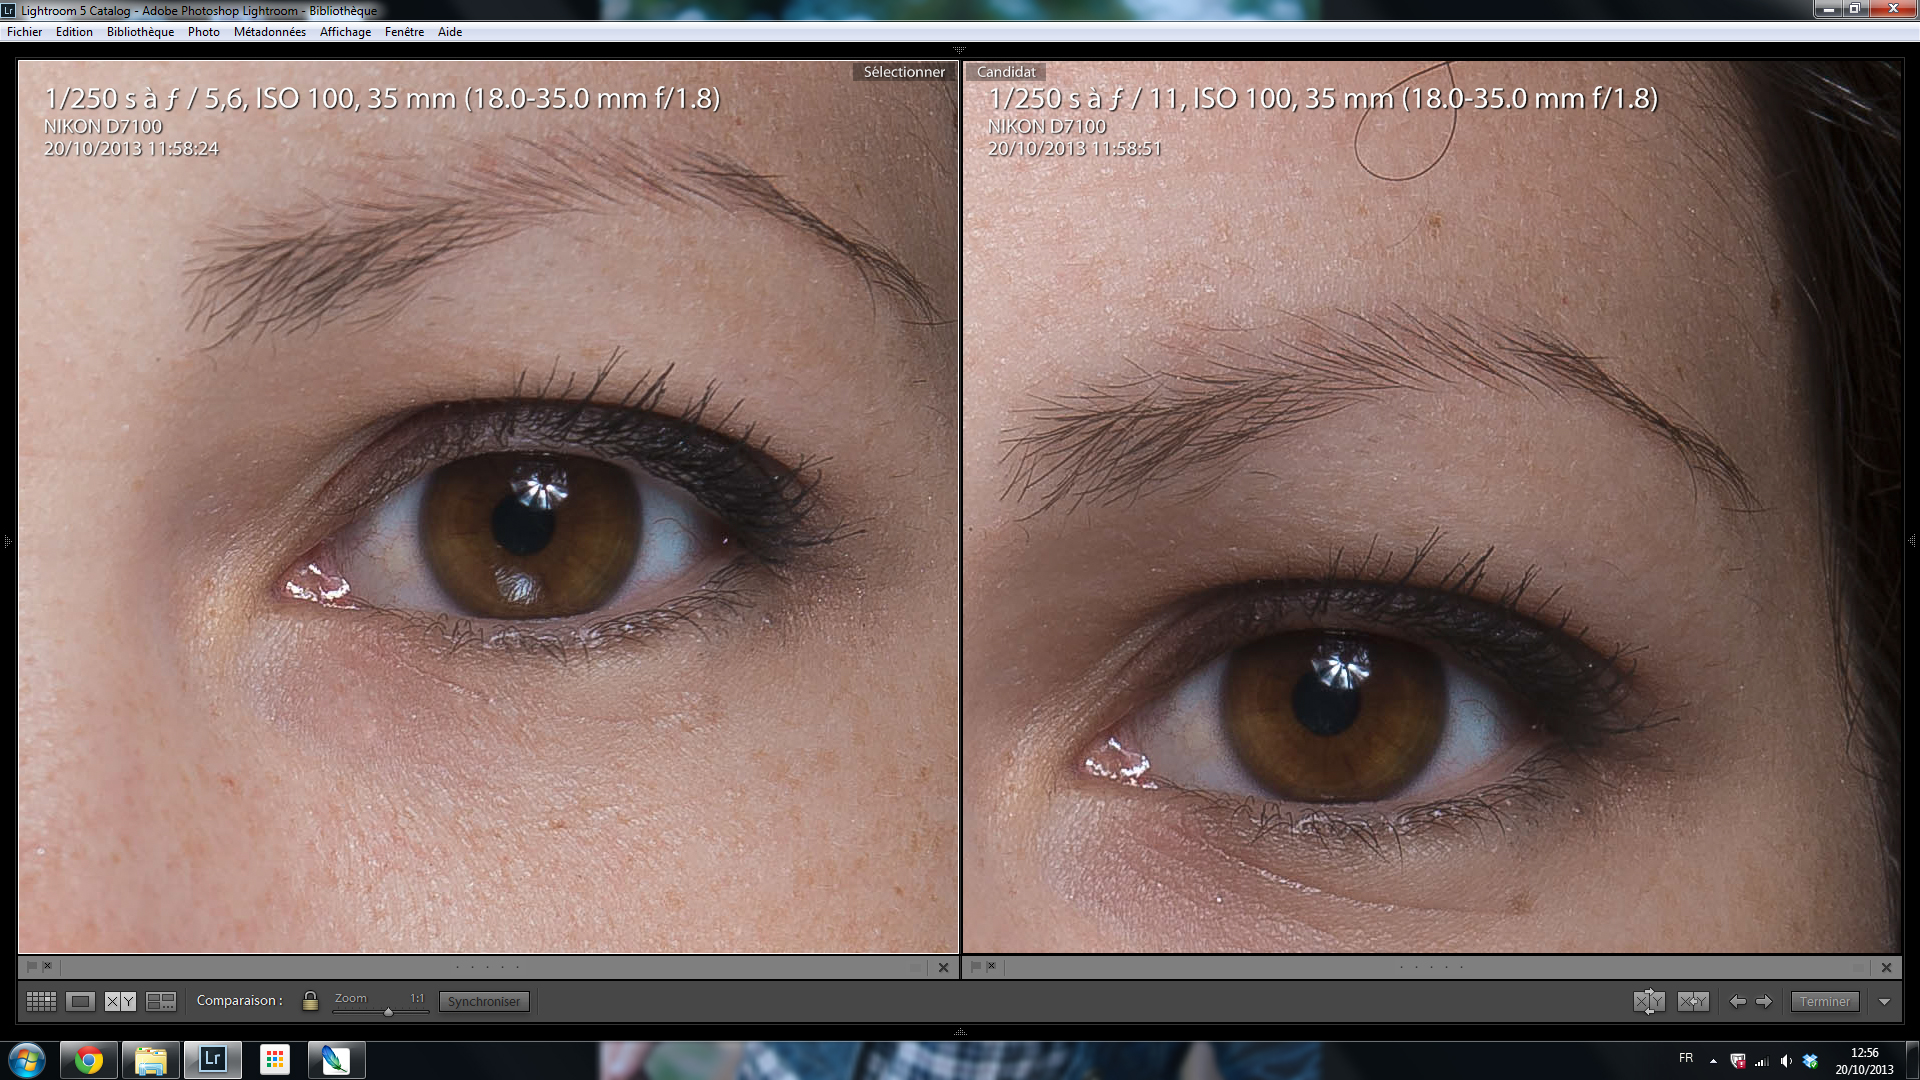 Sigma 18-35 1.8 Art 5.6 vs 11 100%